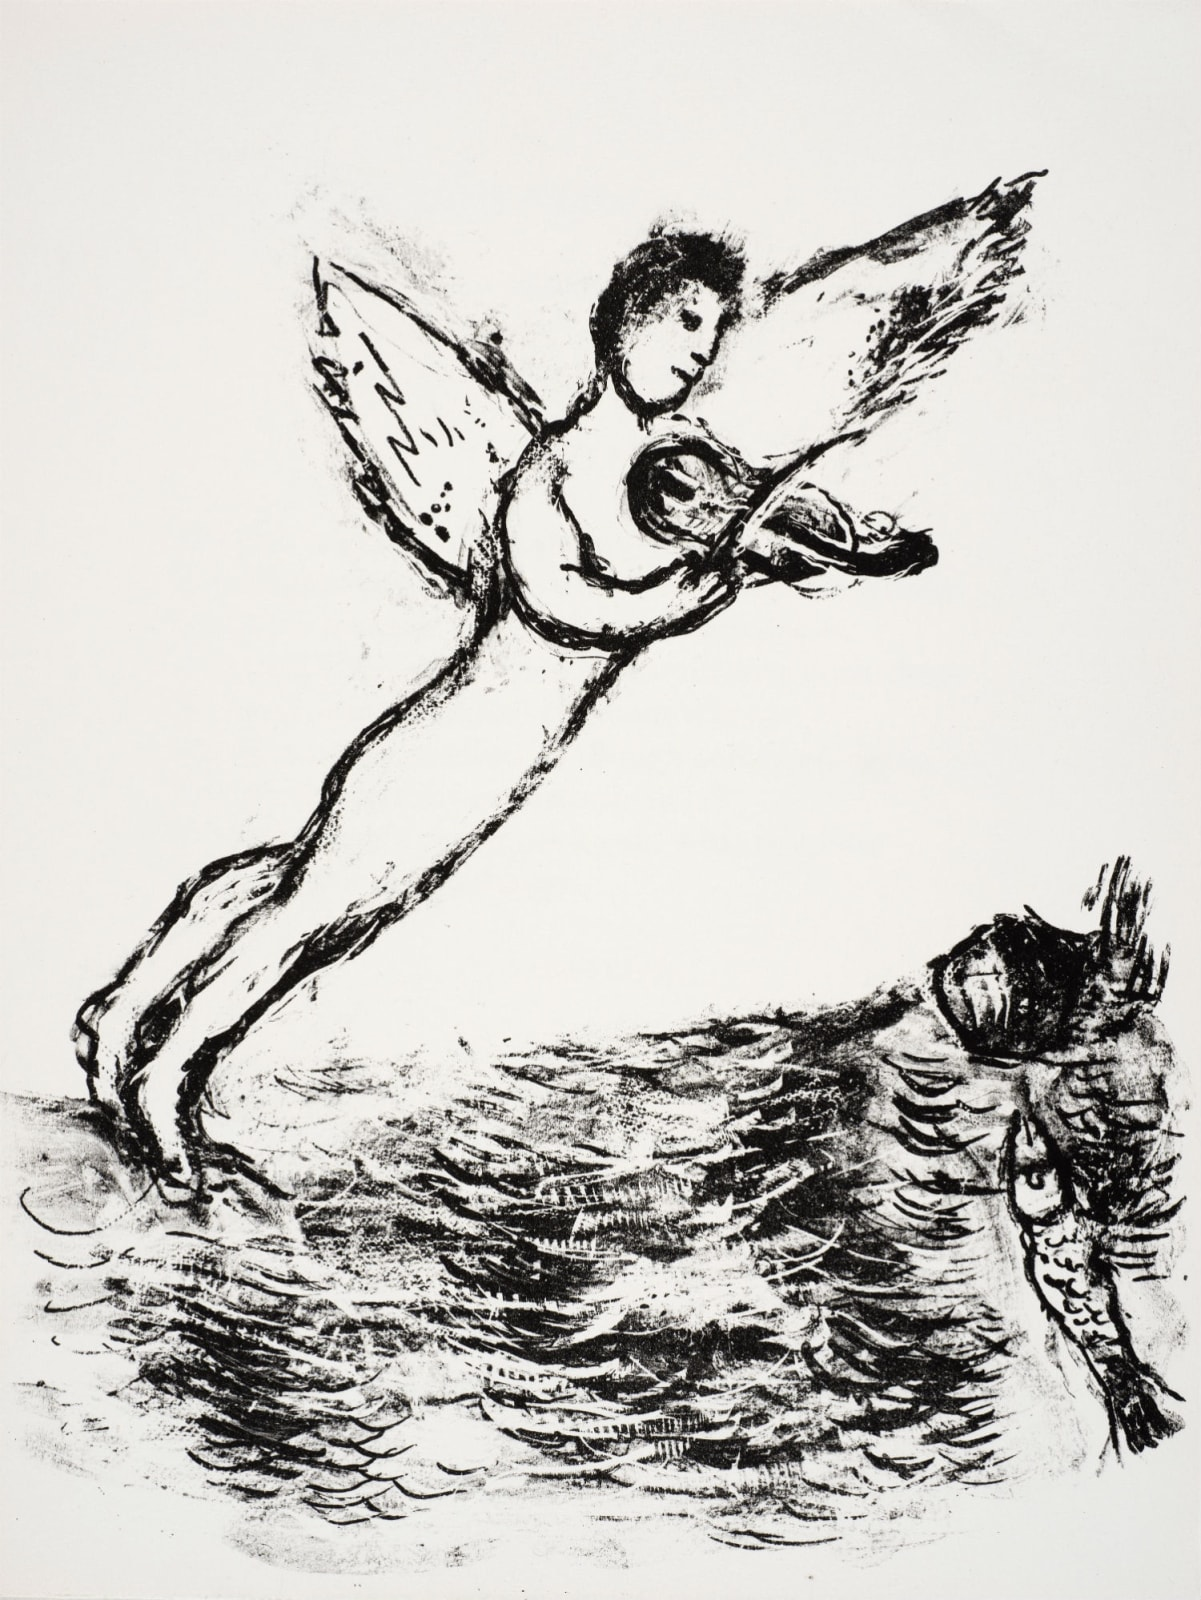 Marc Chagall (1887-1985) Ariel posed above the Sea, playing the Violin (Series: Shakespeare The Tempest) 1975 Lithograph 42.5 x 32.5 cm Ben Uri Collection © Marc Chagall estate To see and discover more about this artist click here